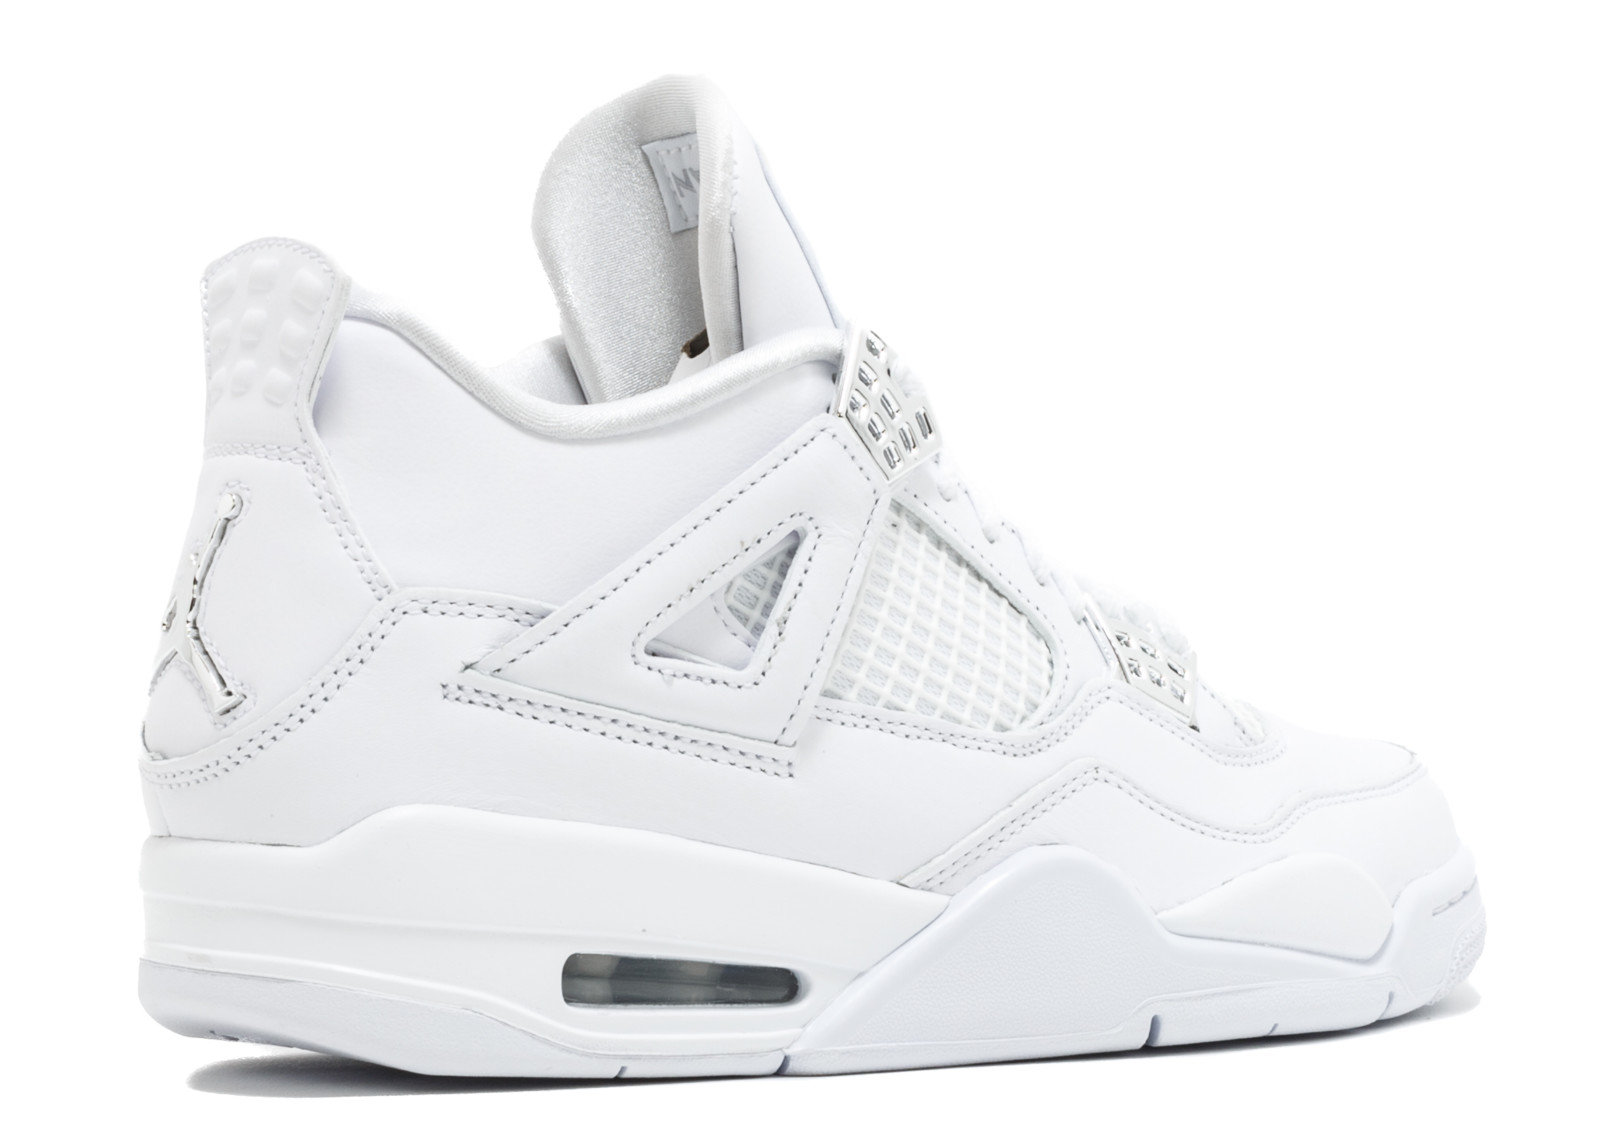 low priced 64907 7583f Nike Air Jordan Retro 4 Pure Money GS